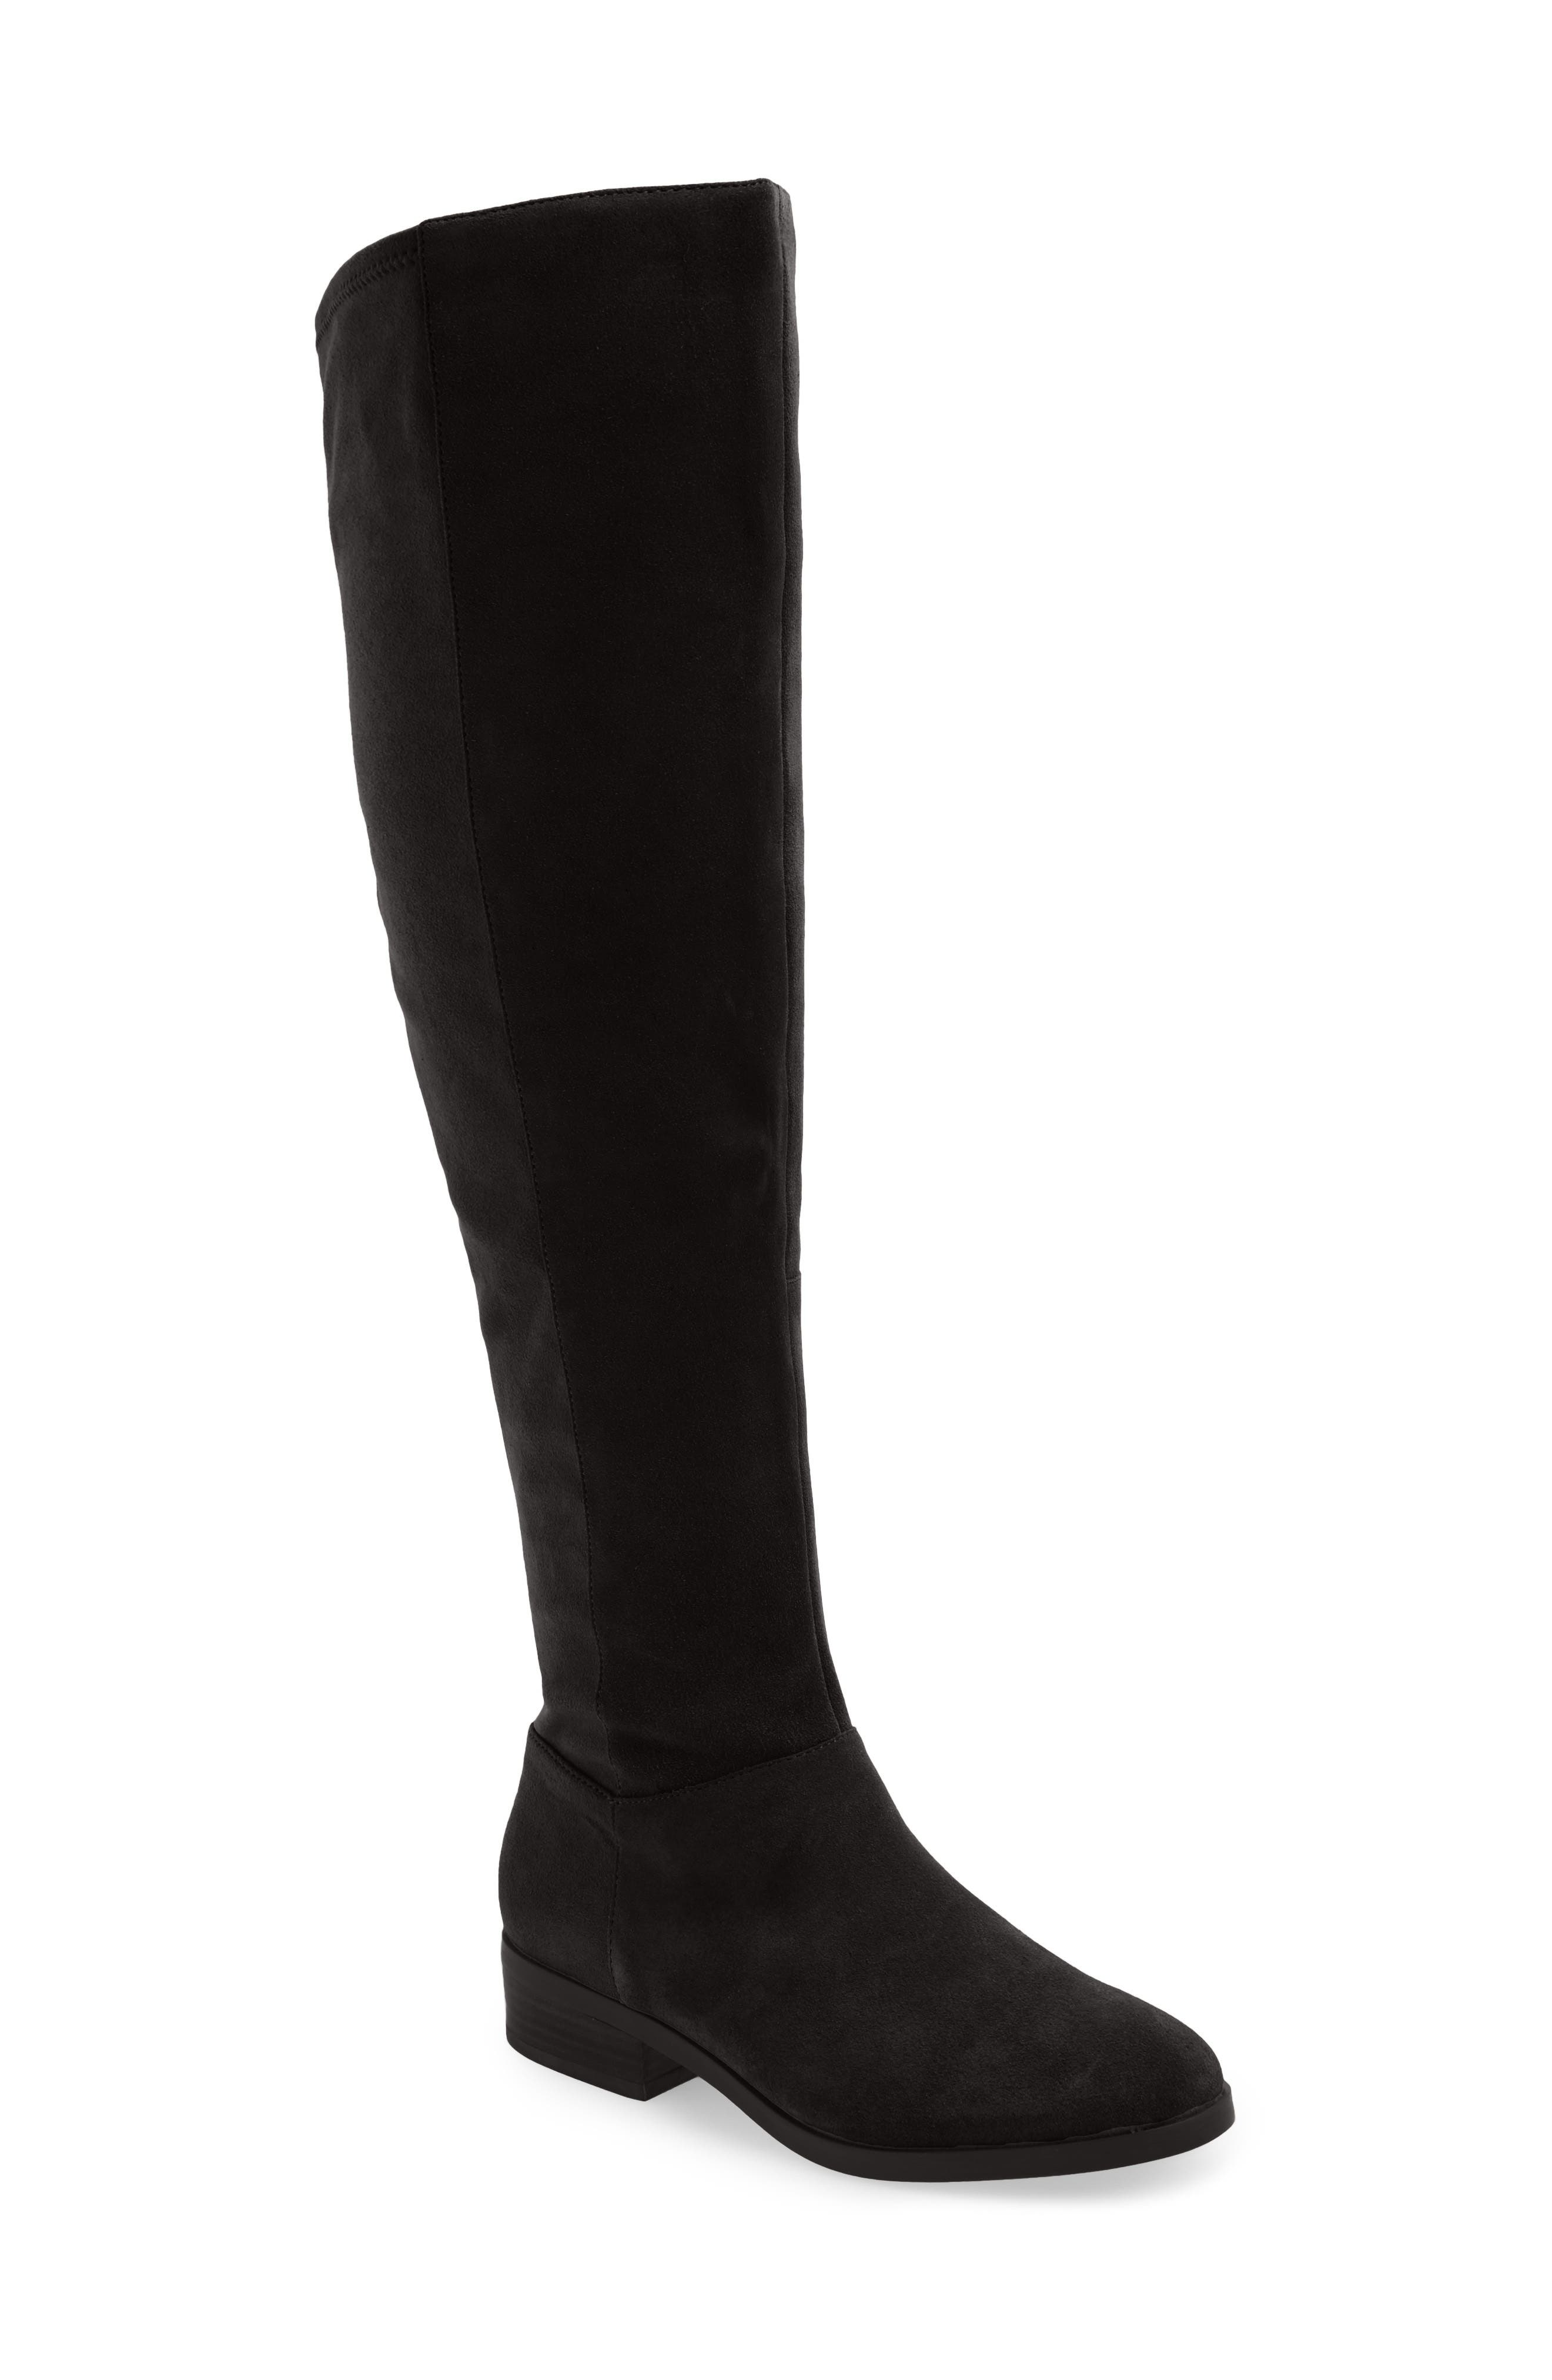 SOLE SOCIETY,                             Kinney Over the Knee Boot,                             Main thumbnail 1, color,                             003